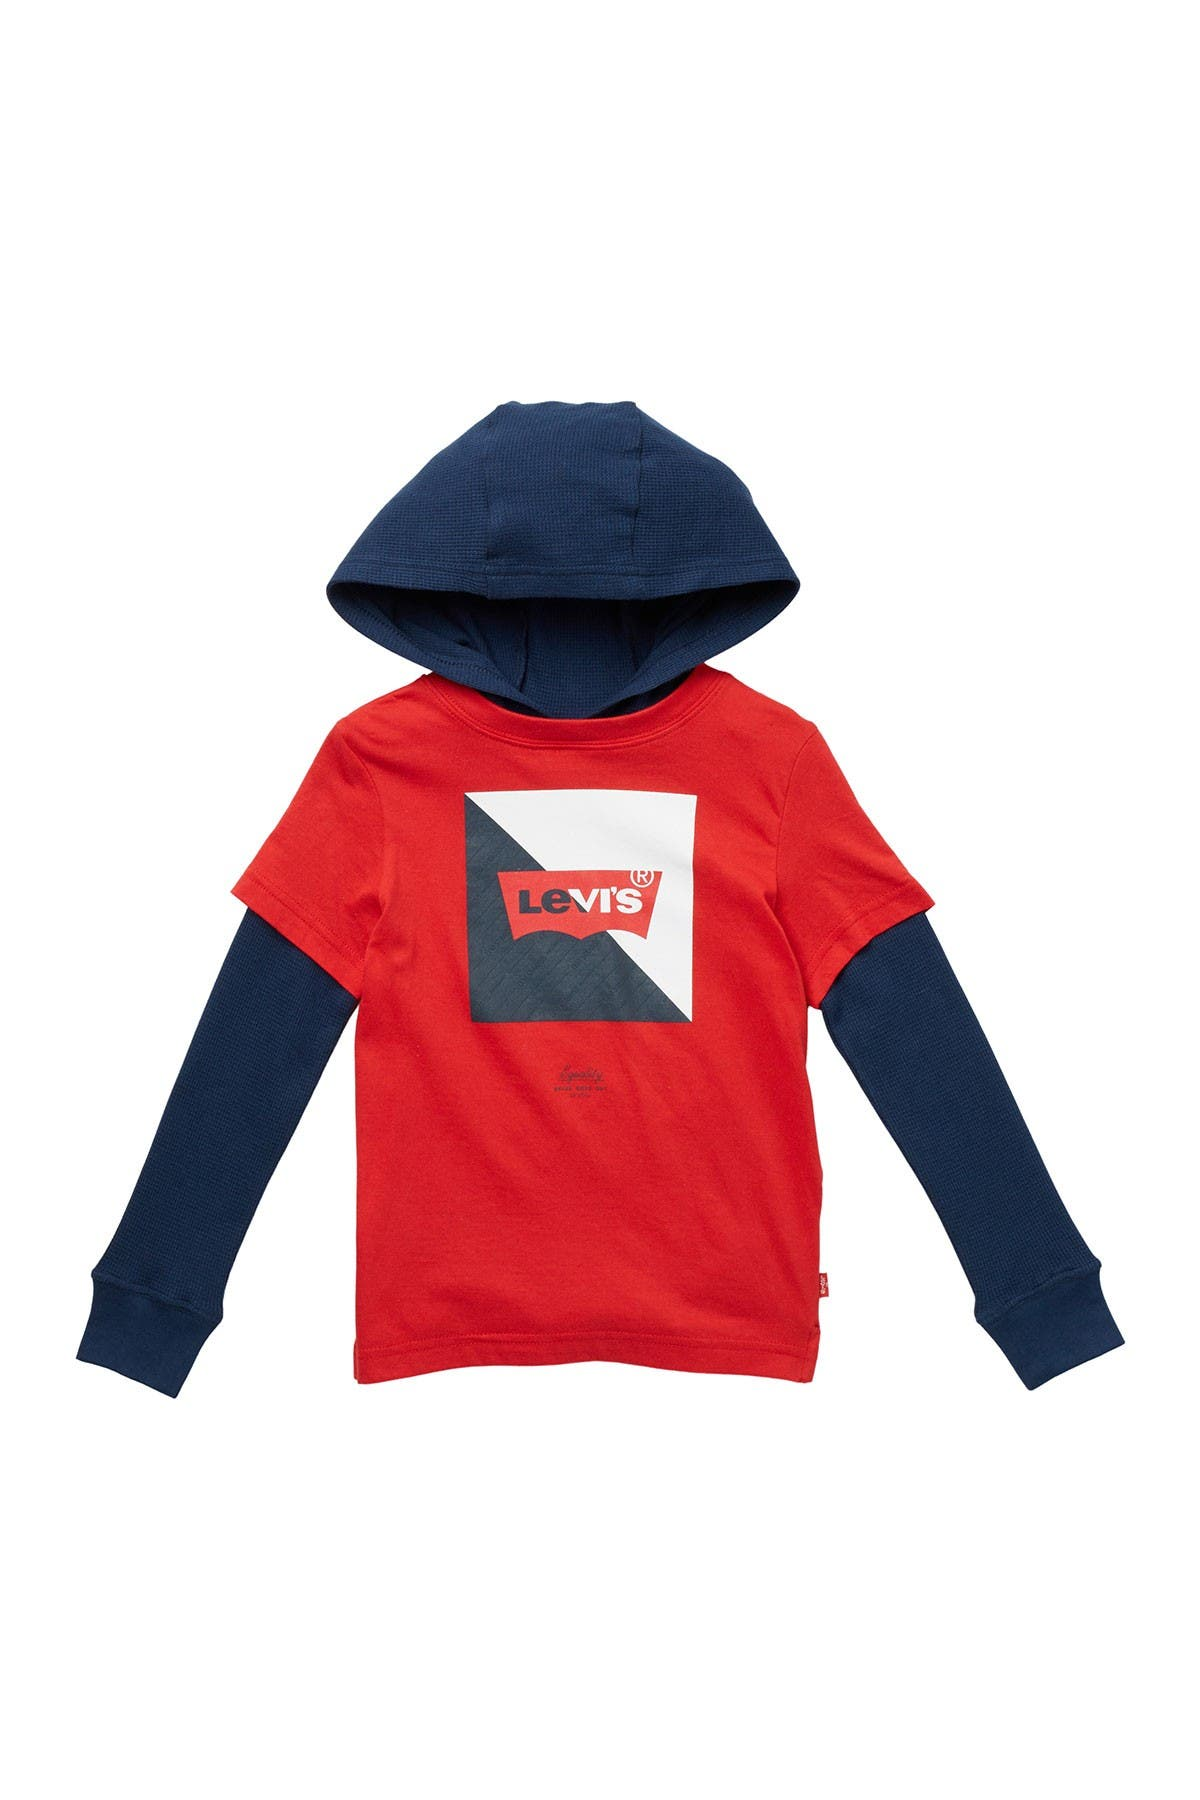 Image of Levi's Twofer Pullover Hoodie